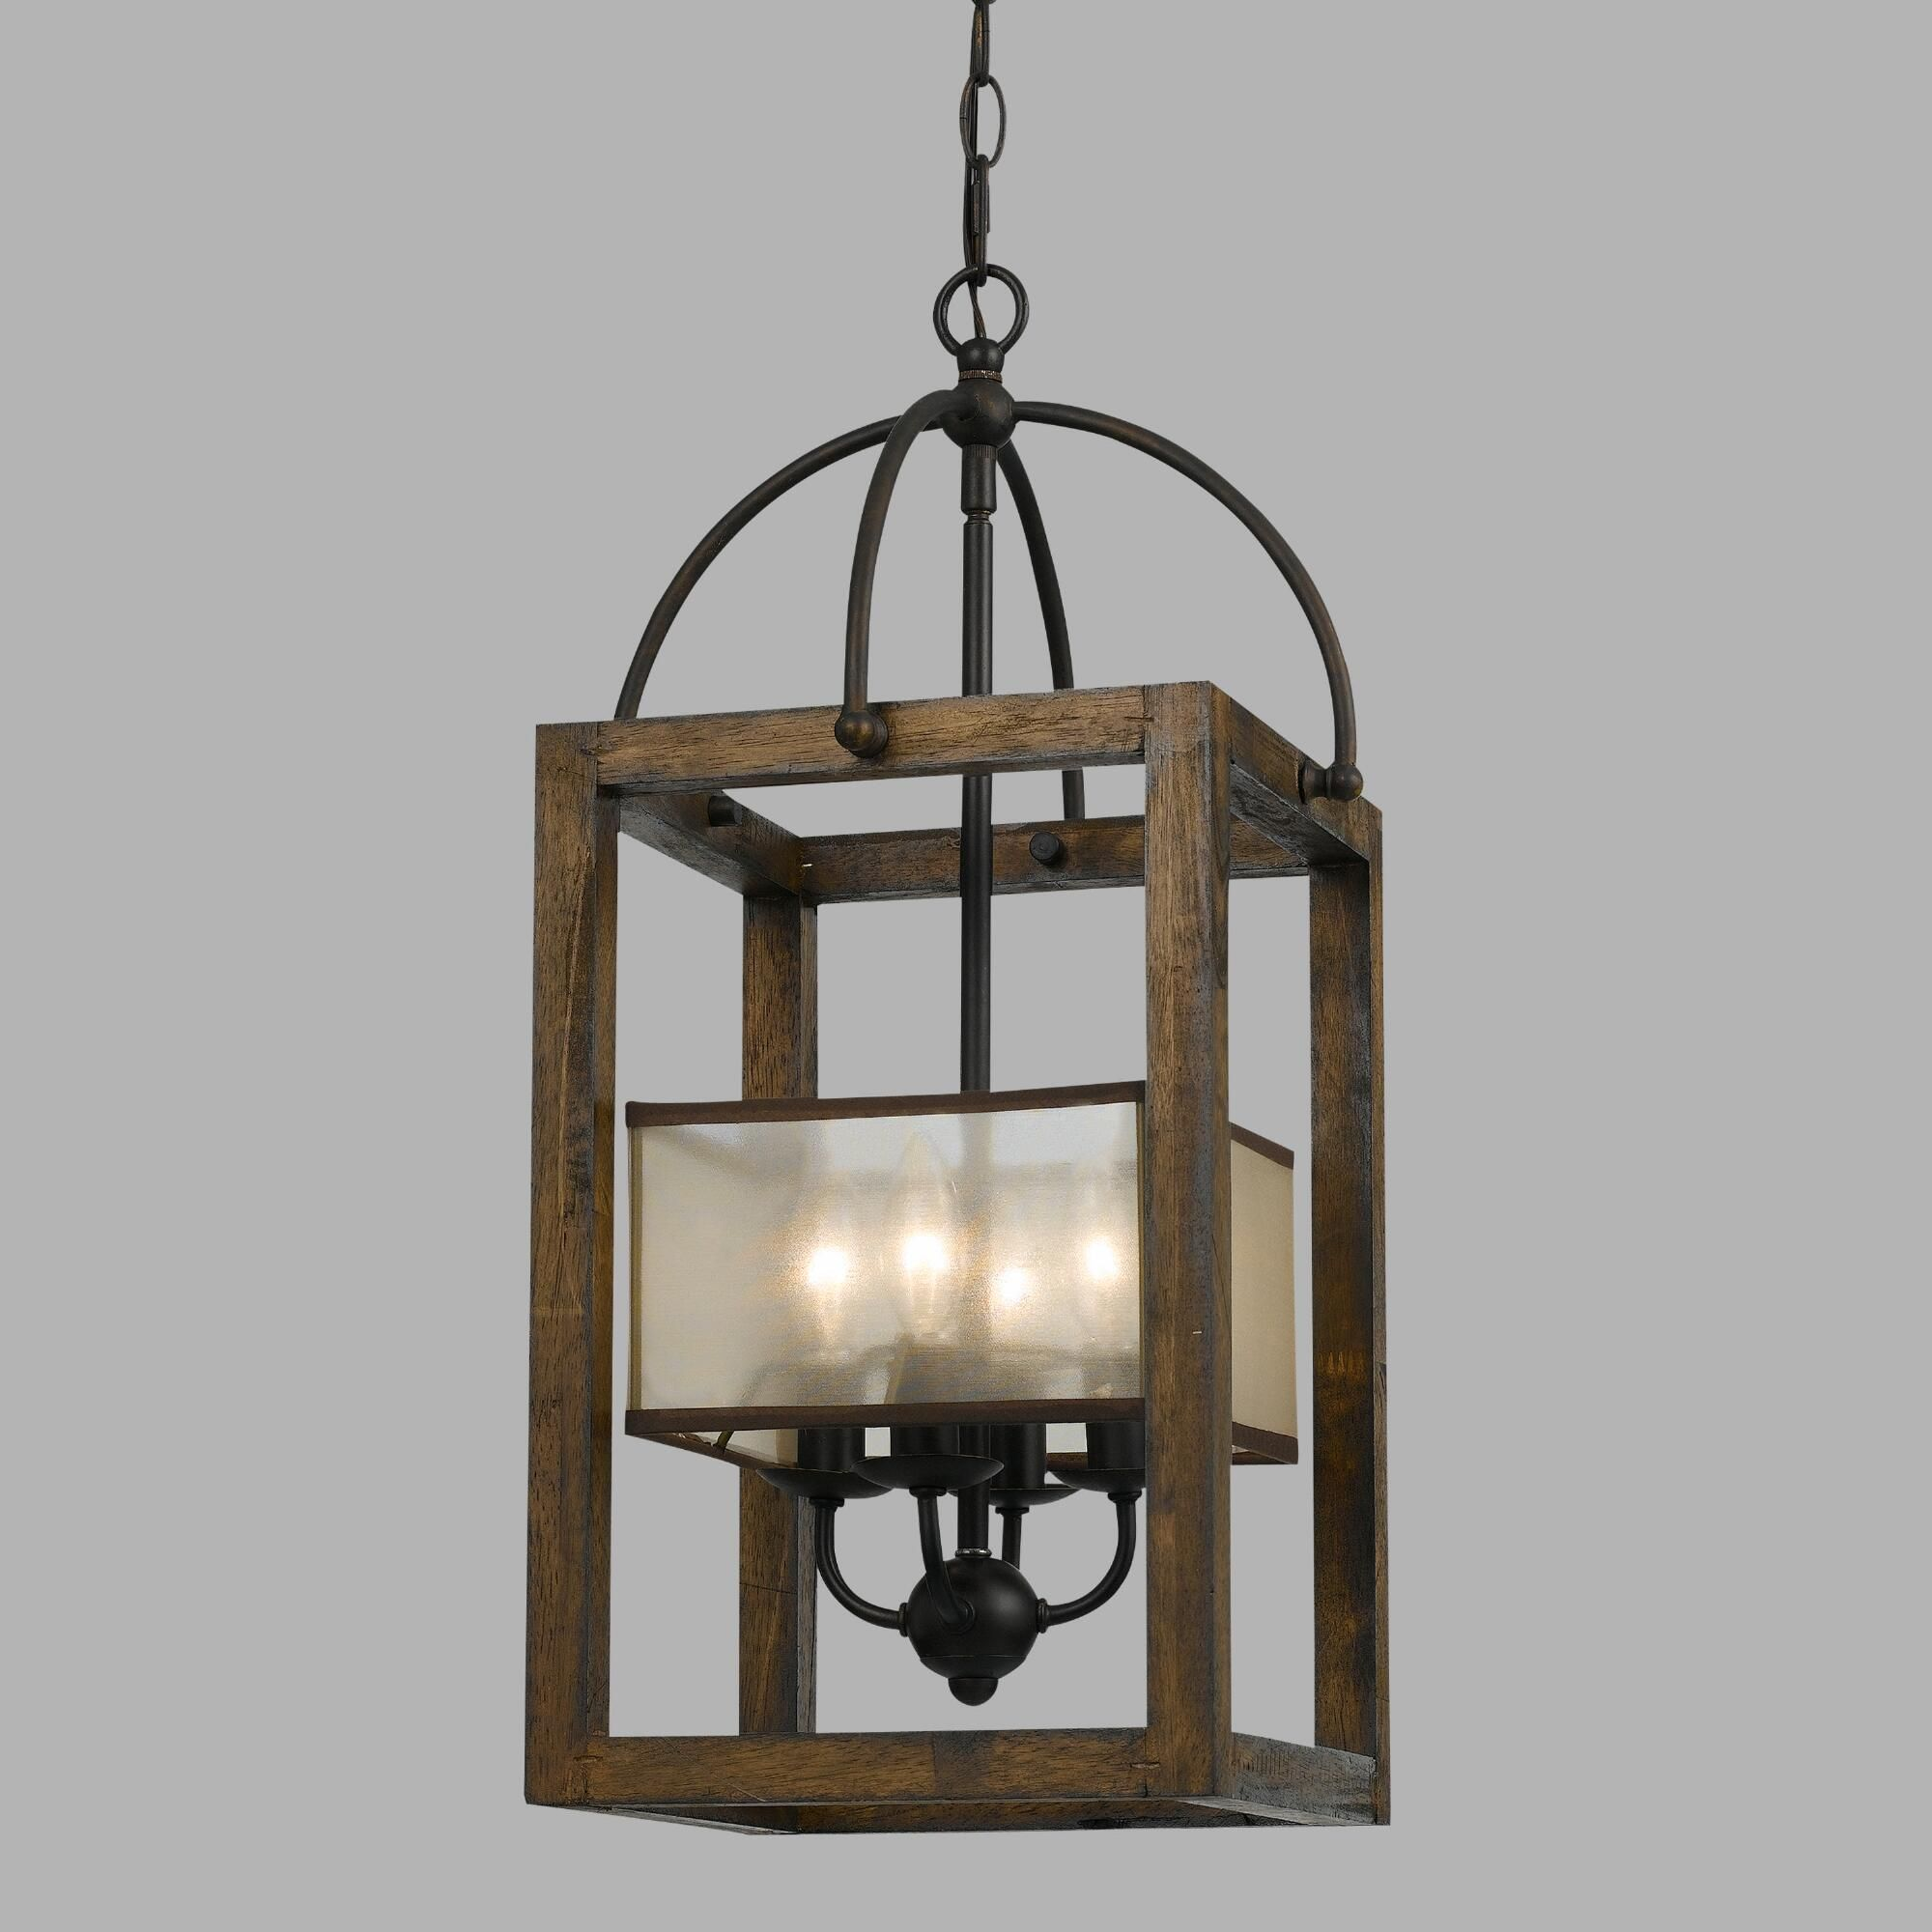 We love the Southwestern vibe of our Mission Chandelier This four